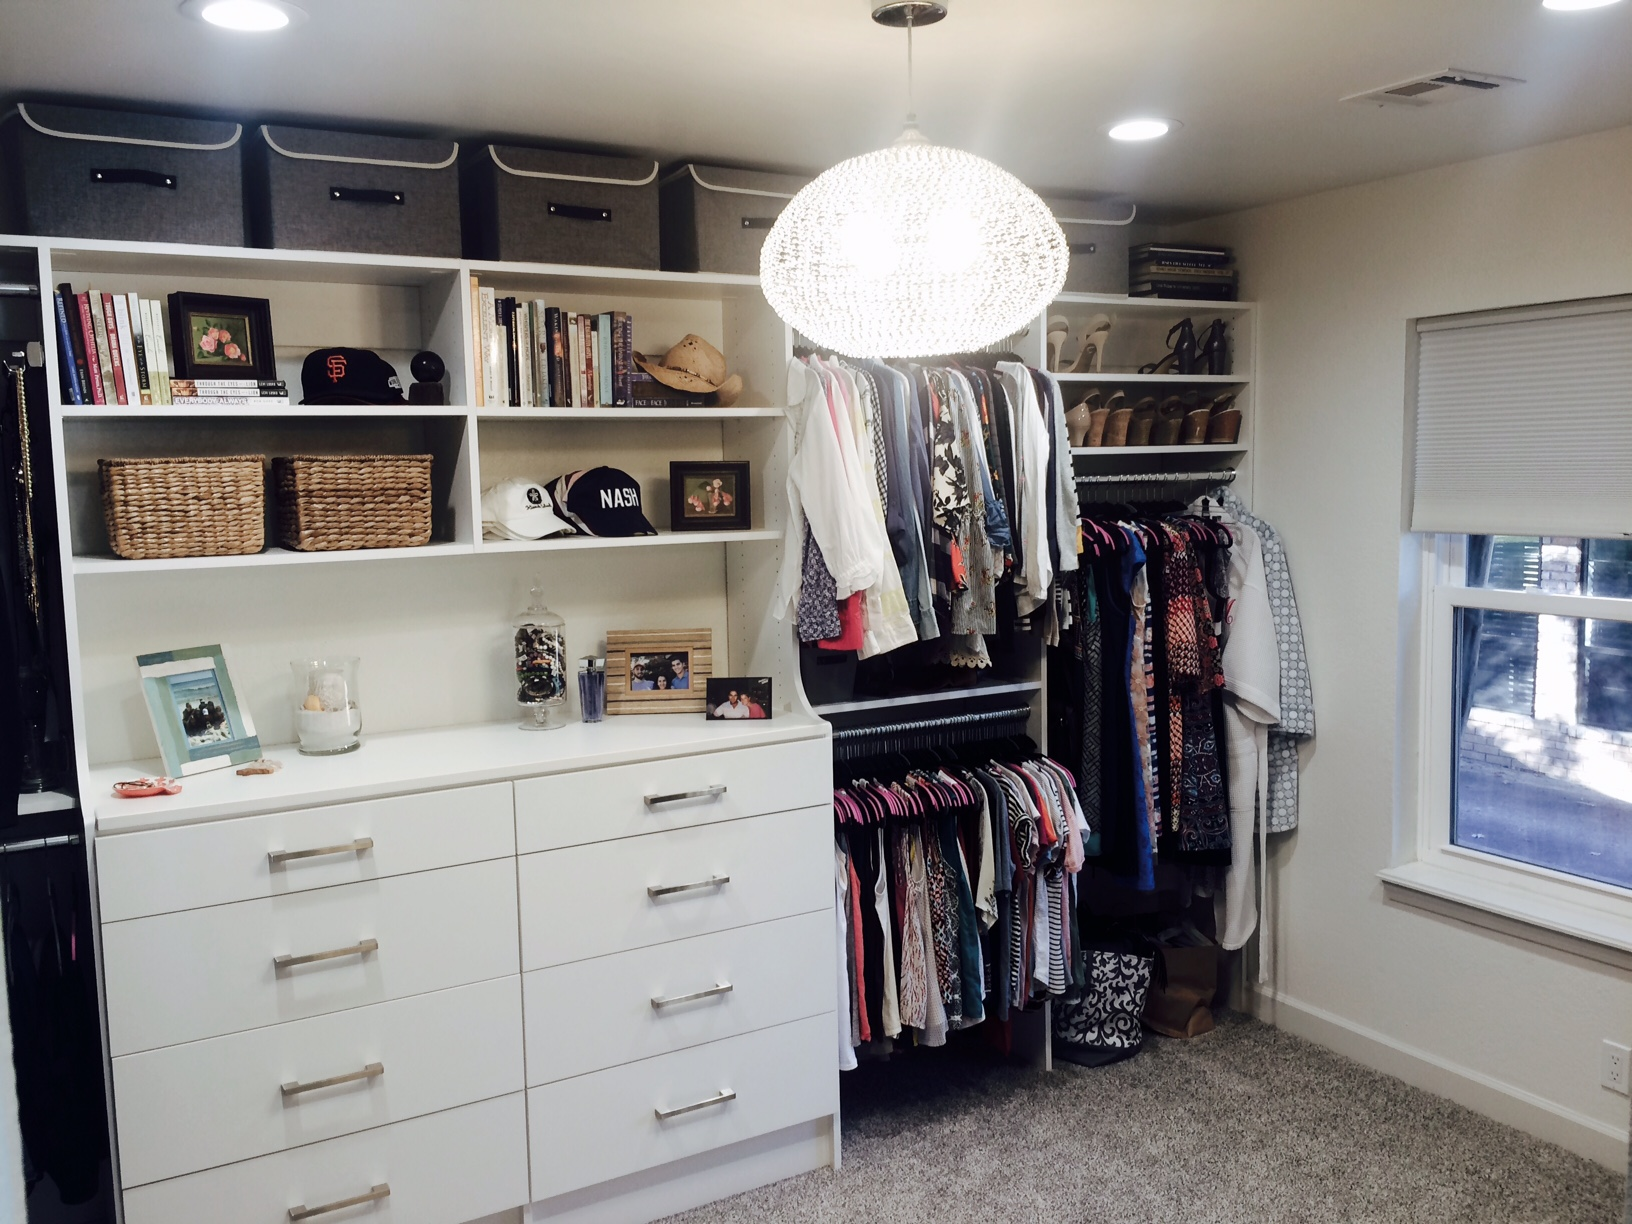 Luxe lighting and a built-in hutch make this converted closet feel like a natural extension of the master.  Call Closets of Tulsa  for a FREE consultation and 3-D closet design:  918.609.0214